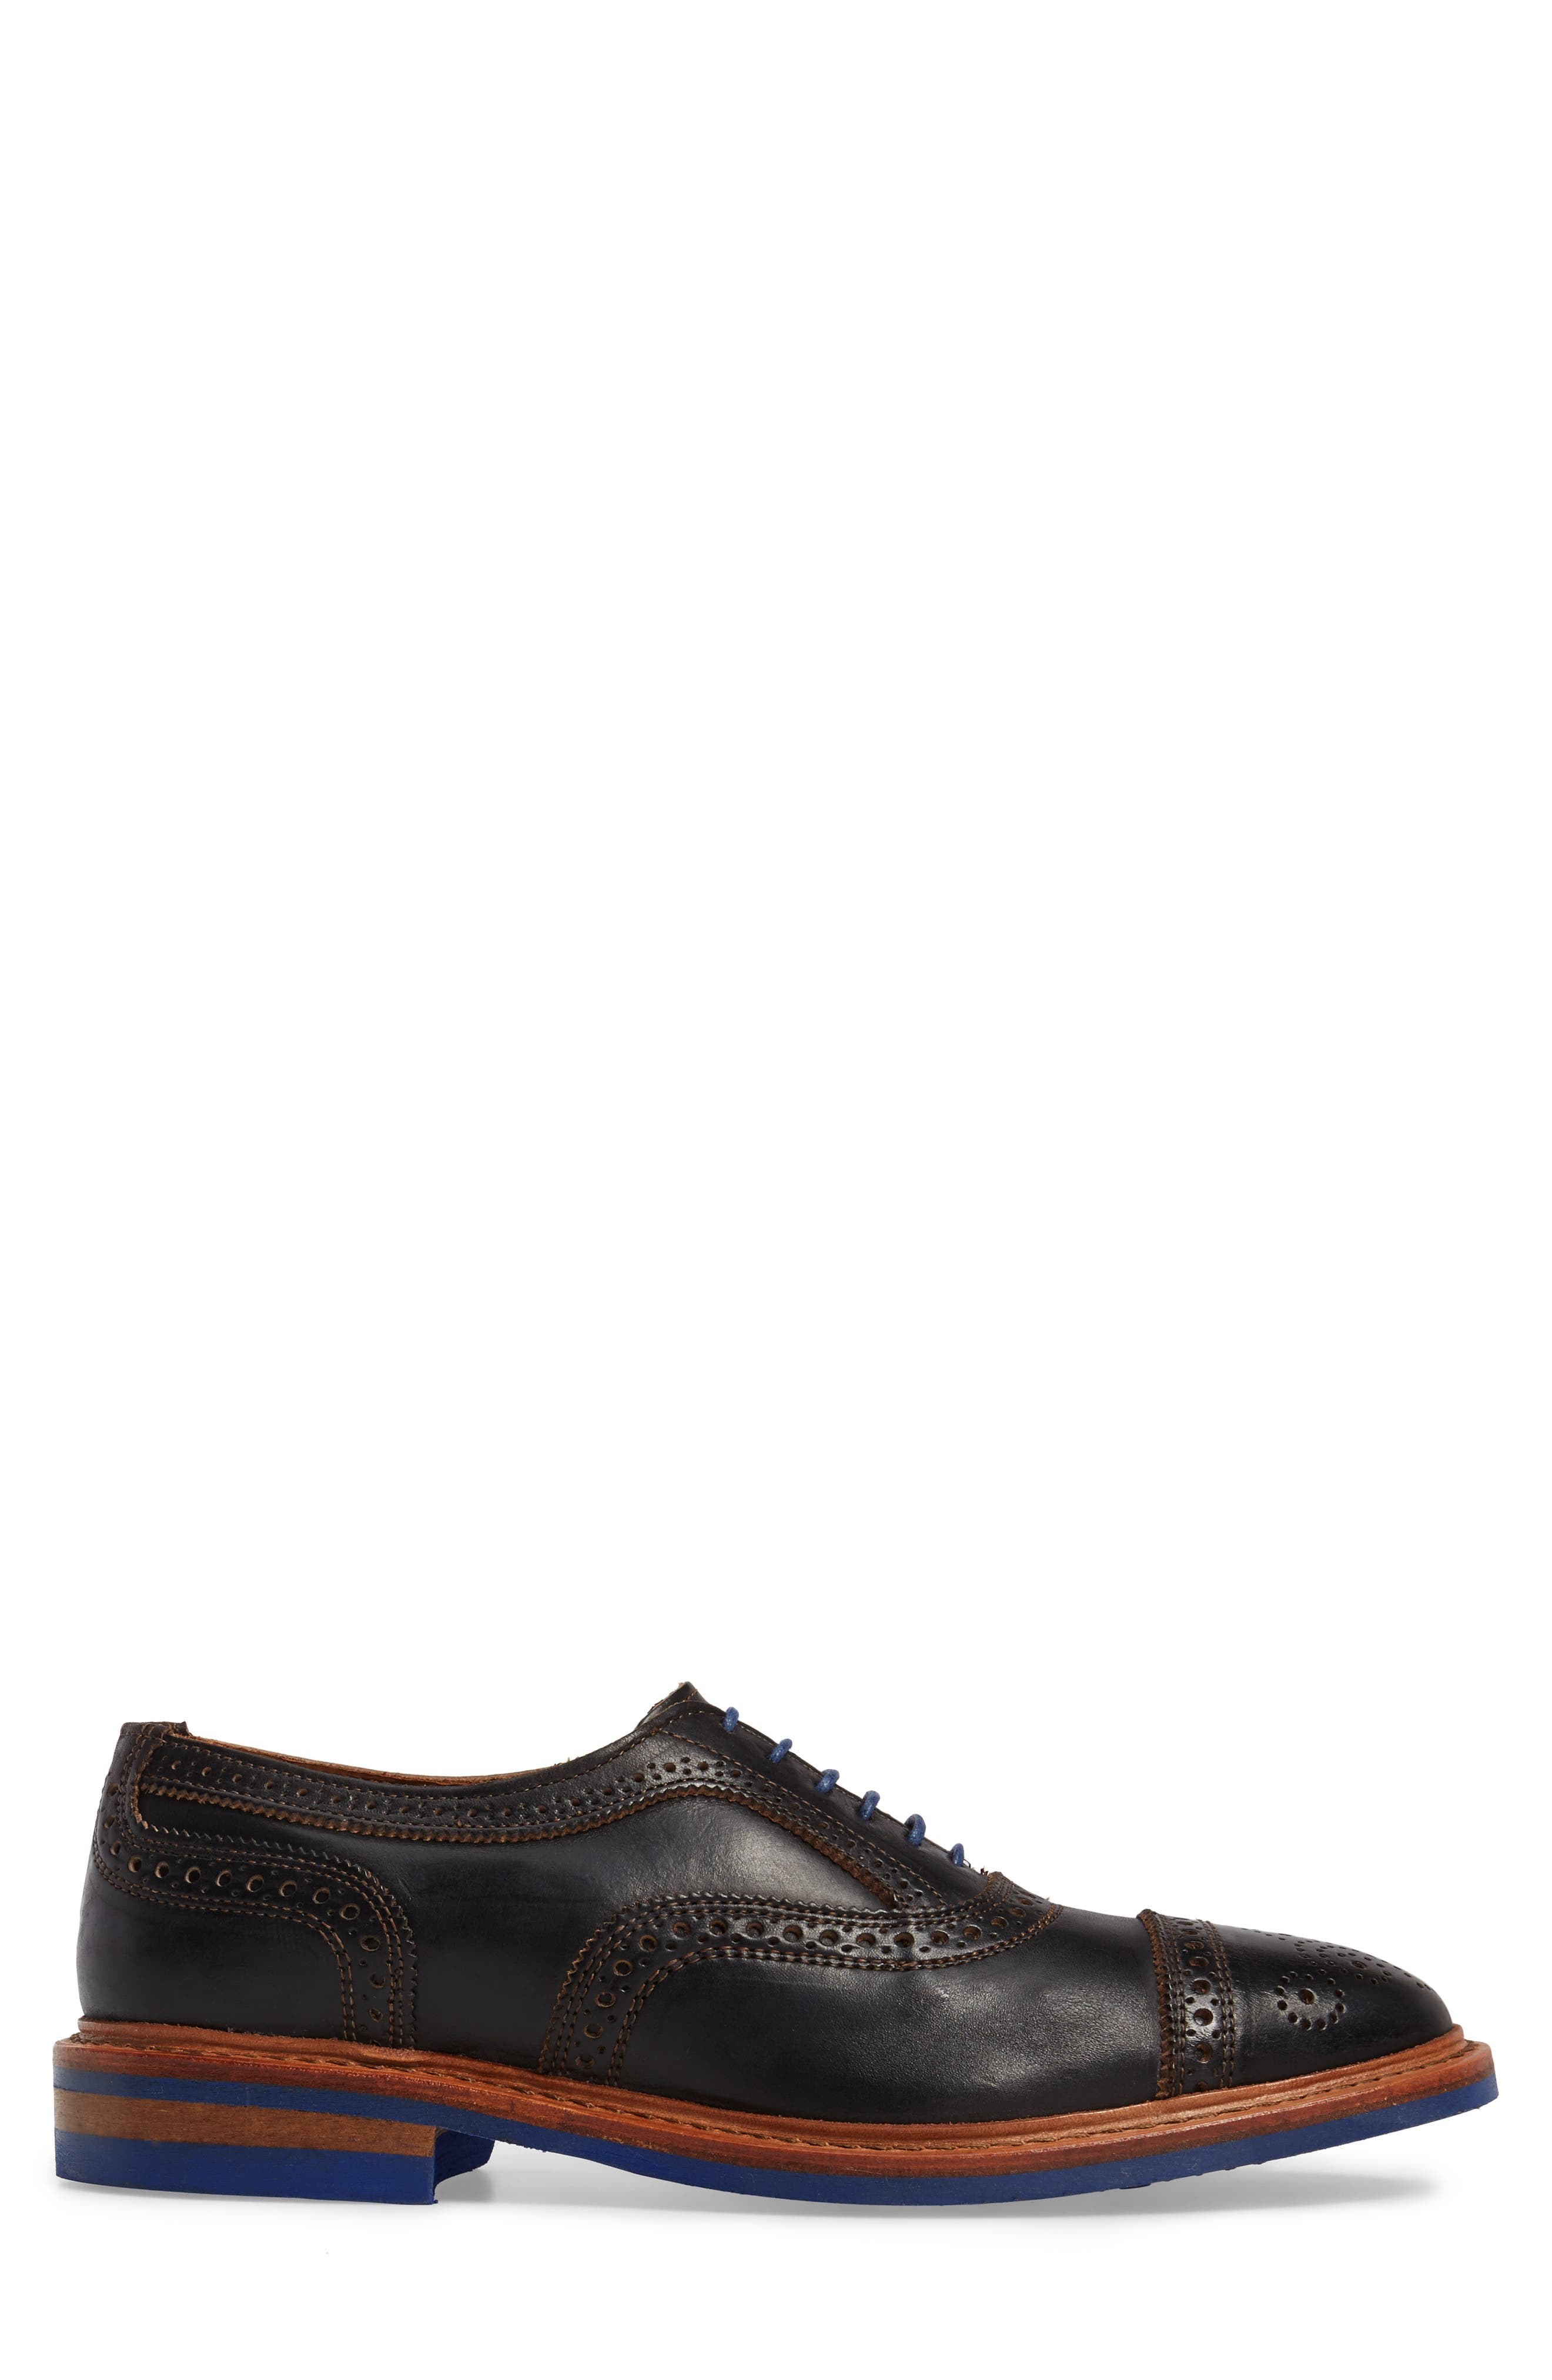 ALLEN EDMONDS, 'Strandmok' Cap Toe Oxford, Alternate thumbnail 3, color, BLACK LEATHER